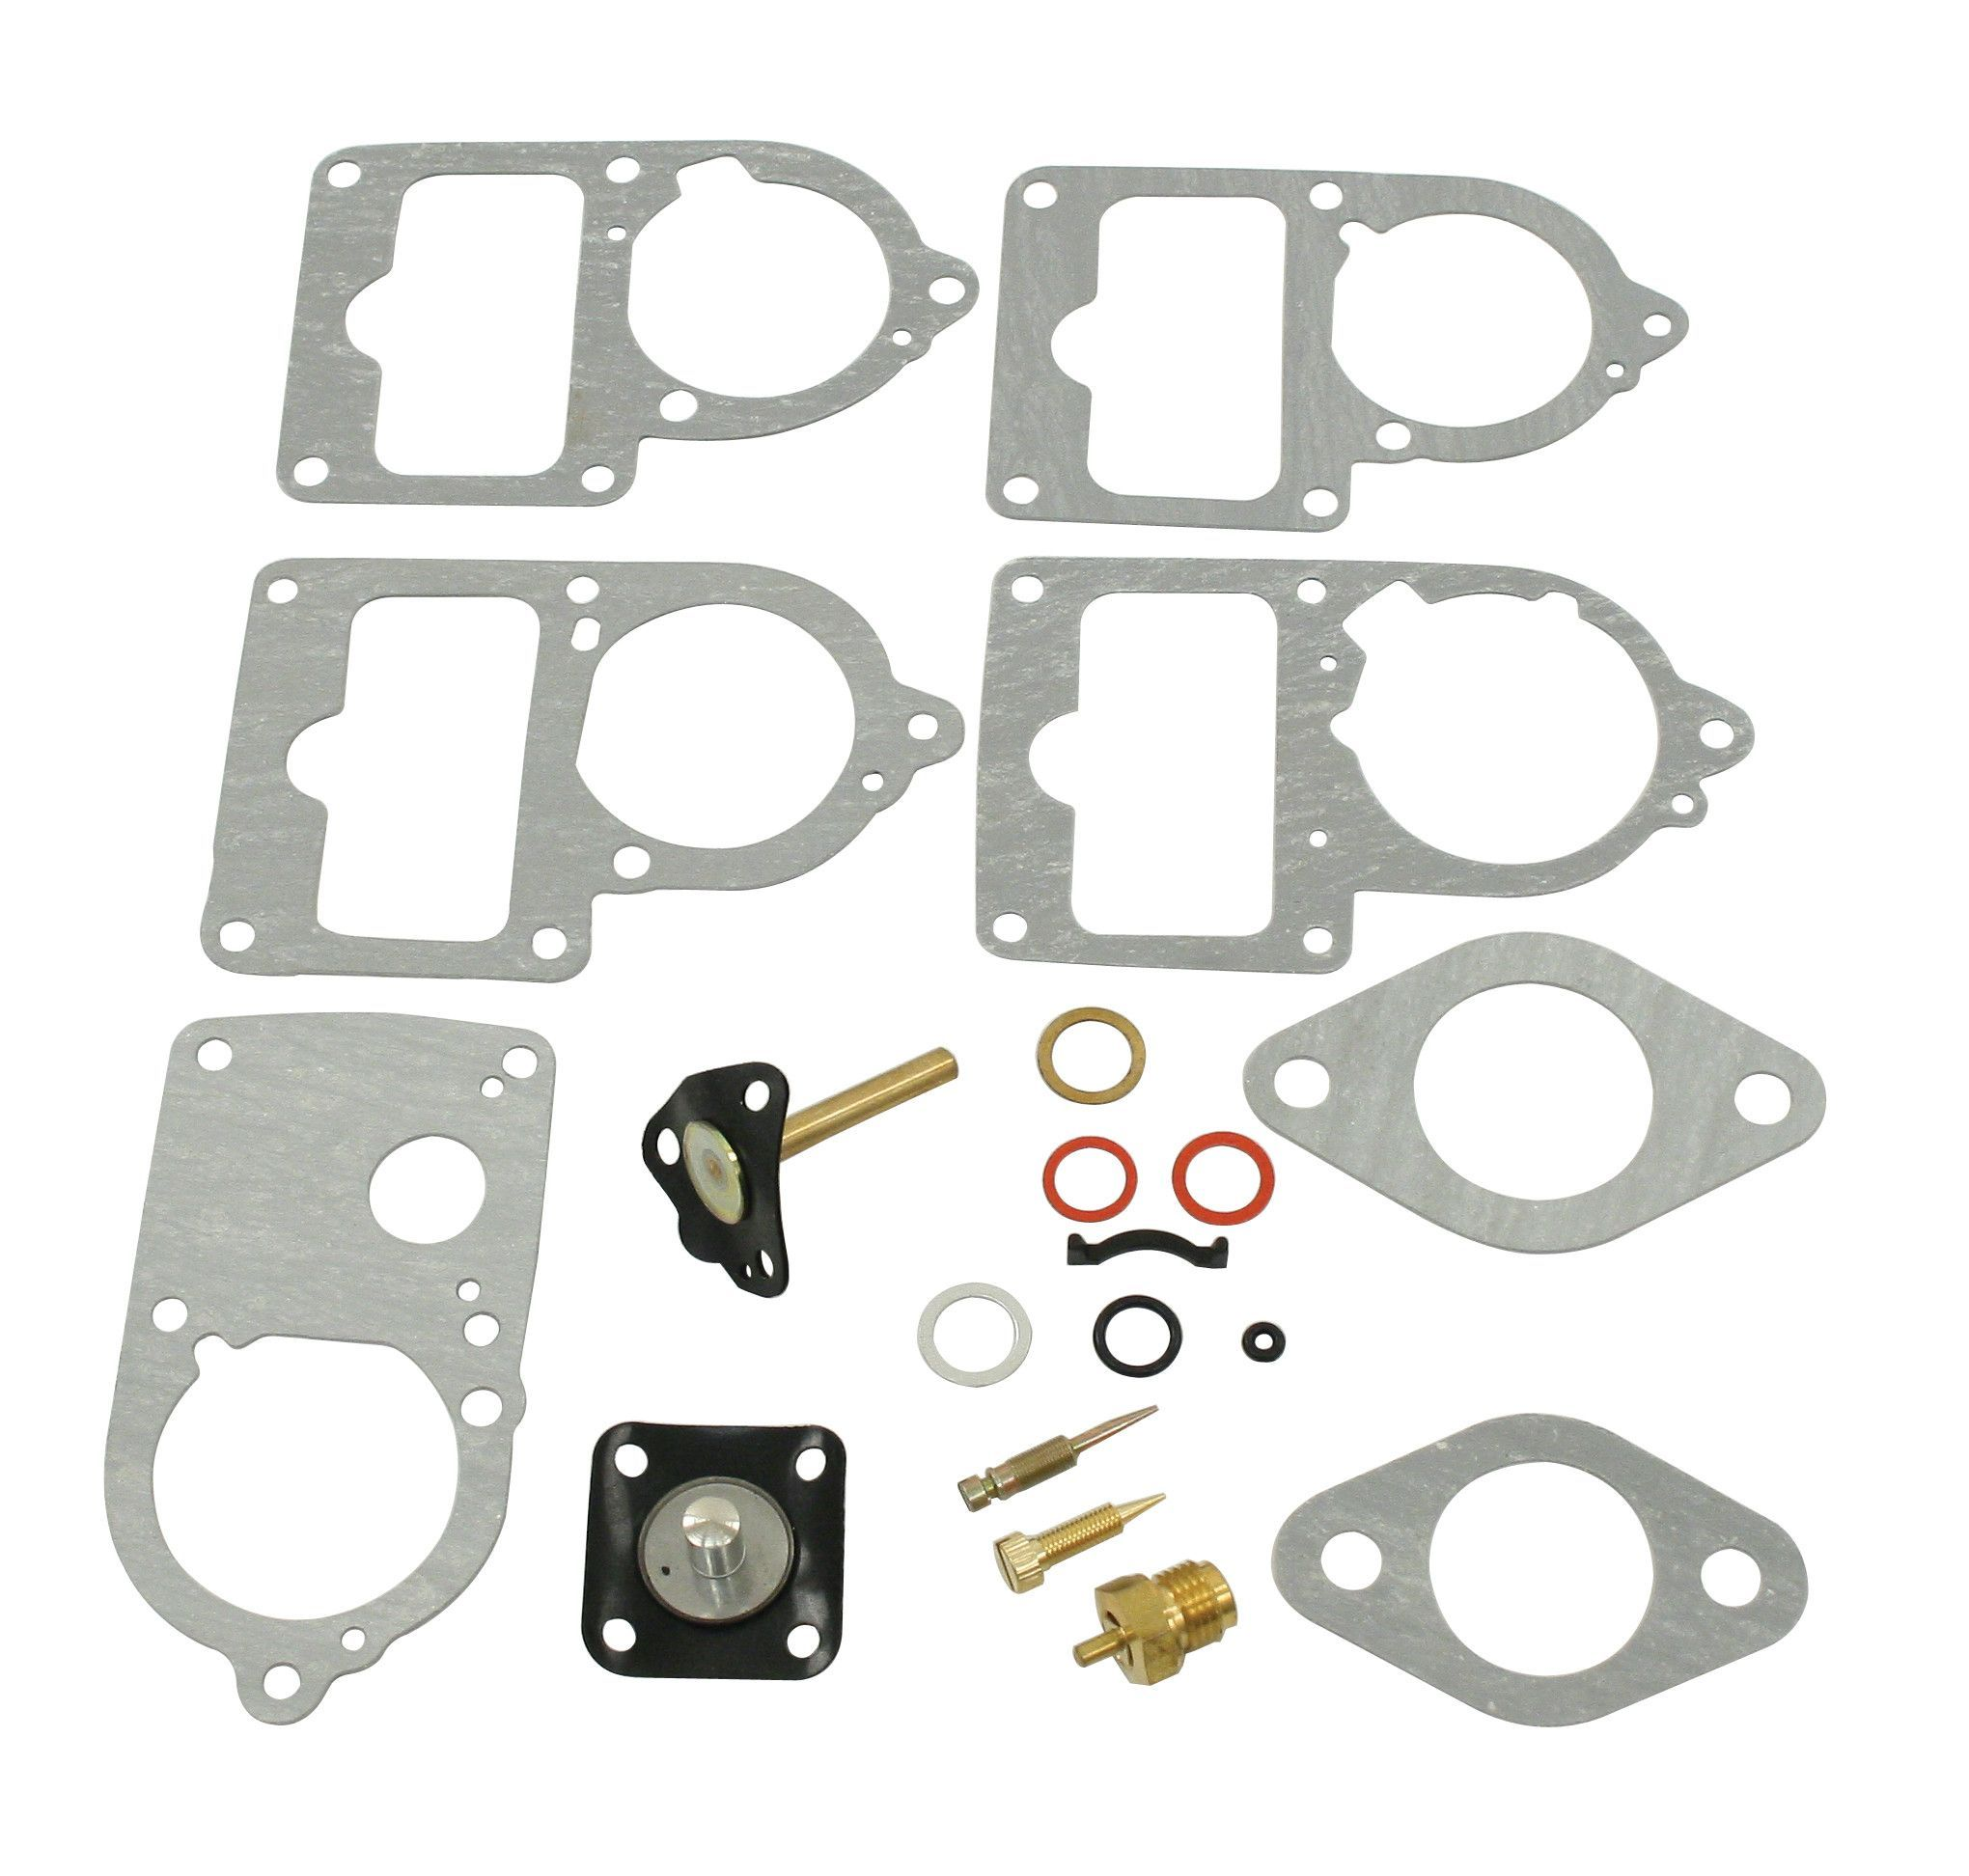 hight resolution of vw solex 28 34 pict carburetor rebuild kit empi 2500